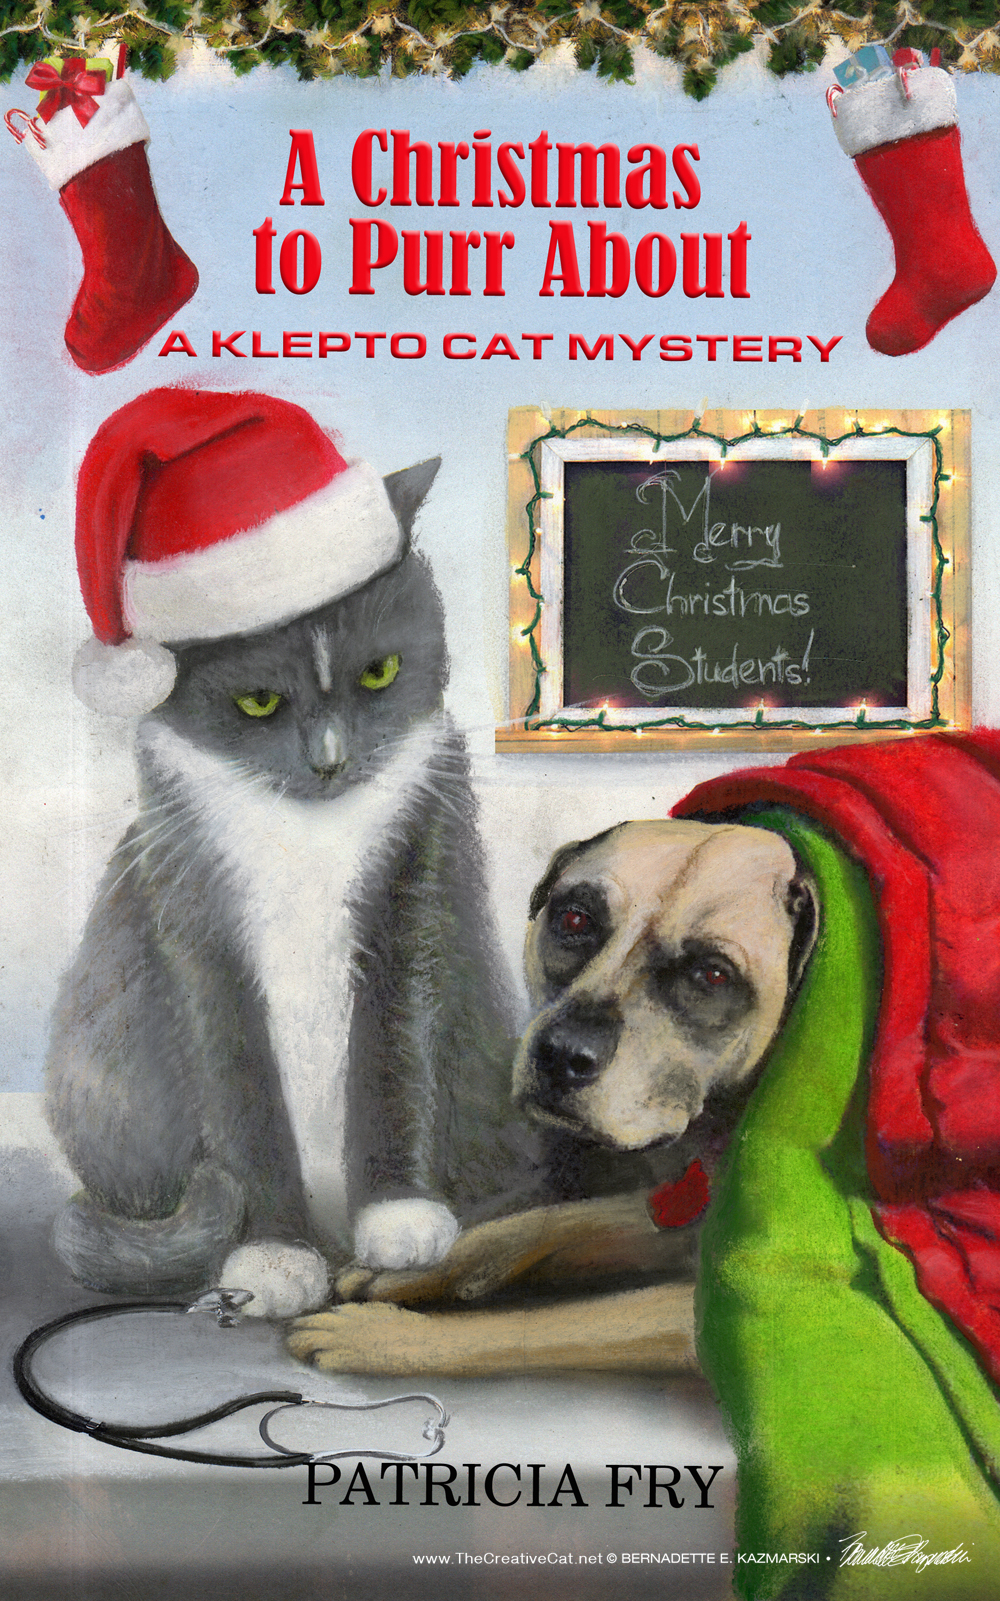 """""""A Christmas to Purr About"""" Klepto Cat Mysteries No. 22""""A Christmas to Purr About"""" Klepto Cat Mysteries No. 22"""